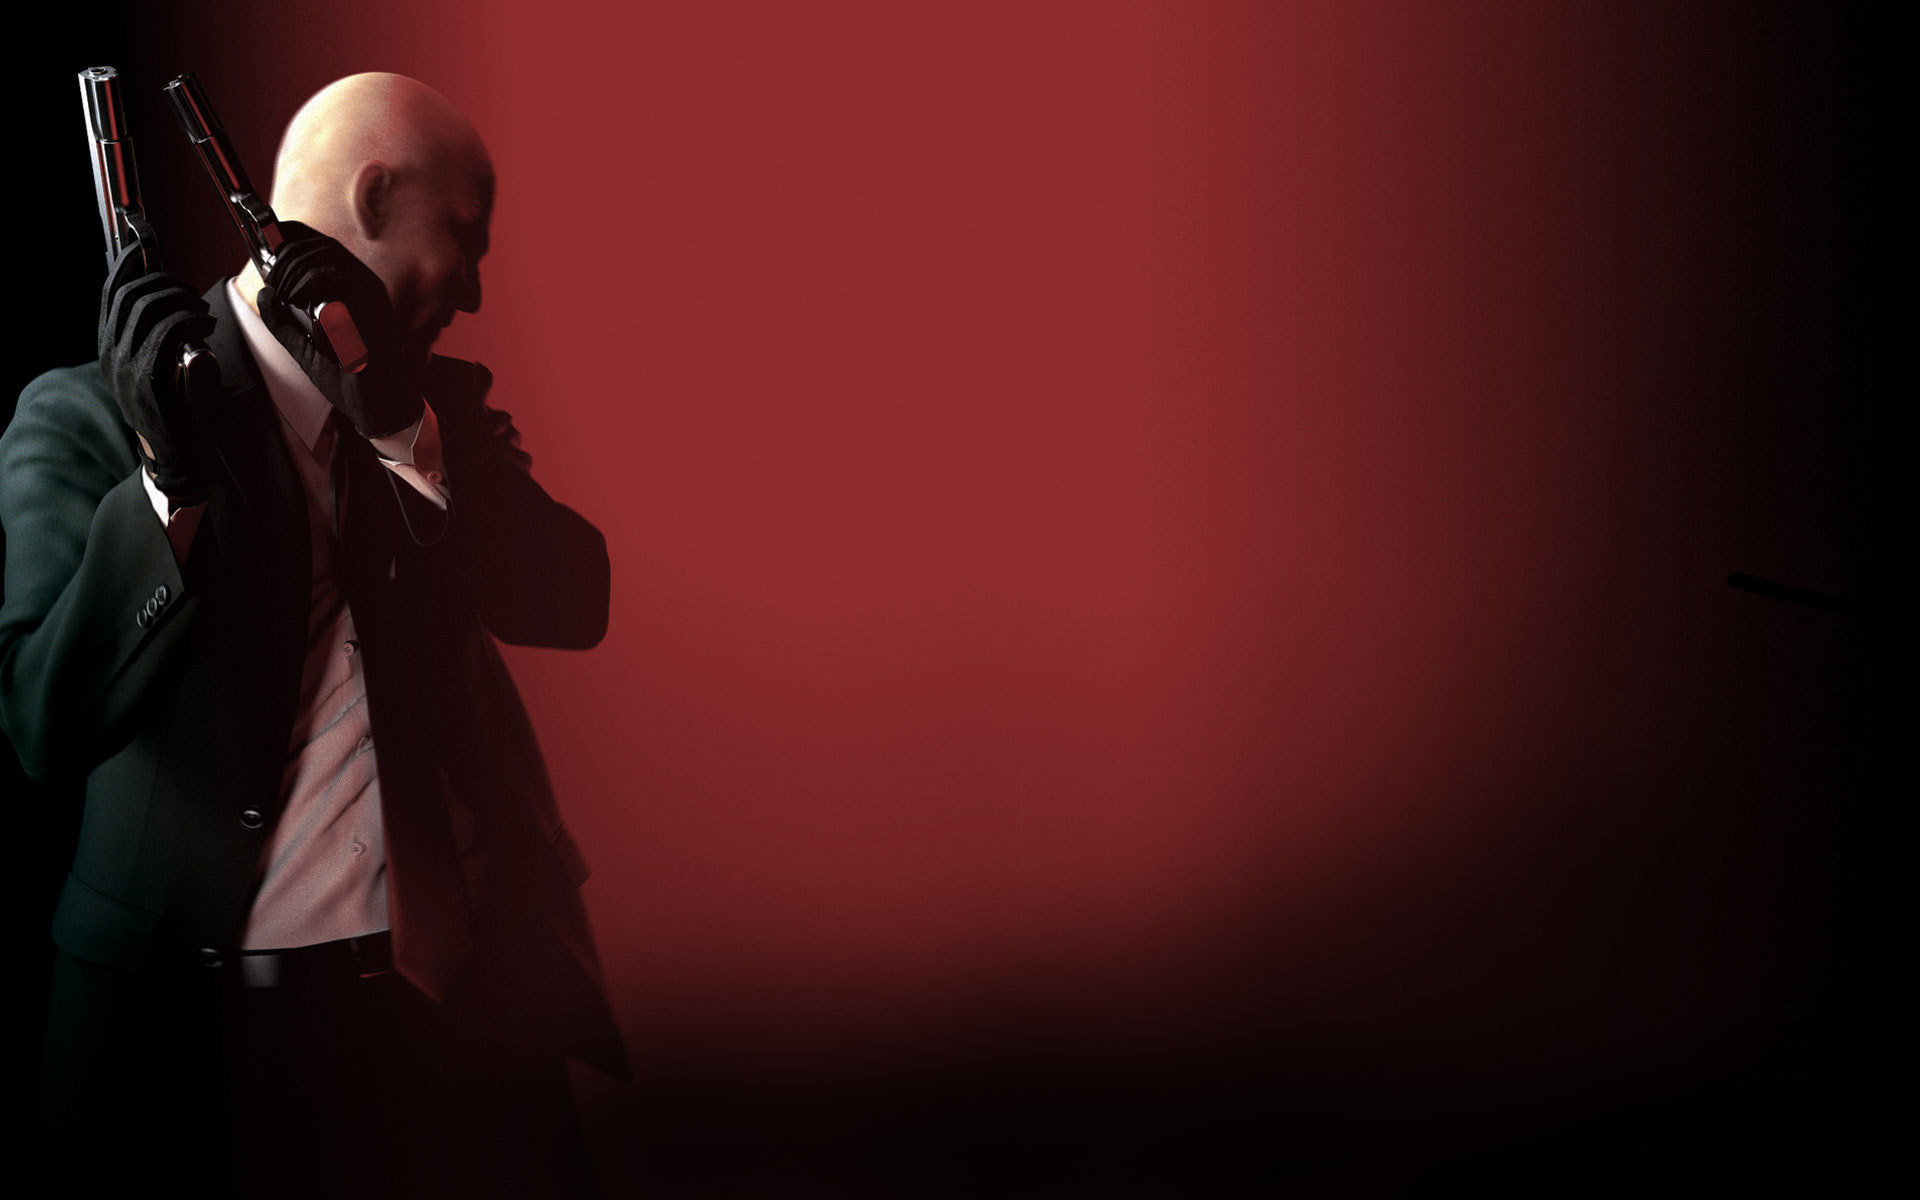 Hitman Absolution Background Into Red.jpg